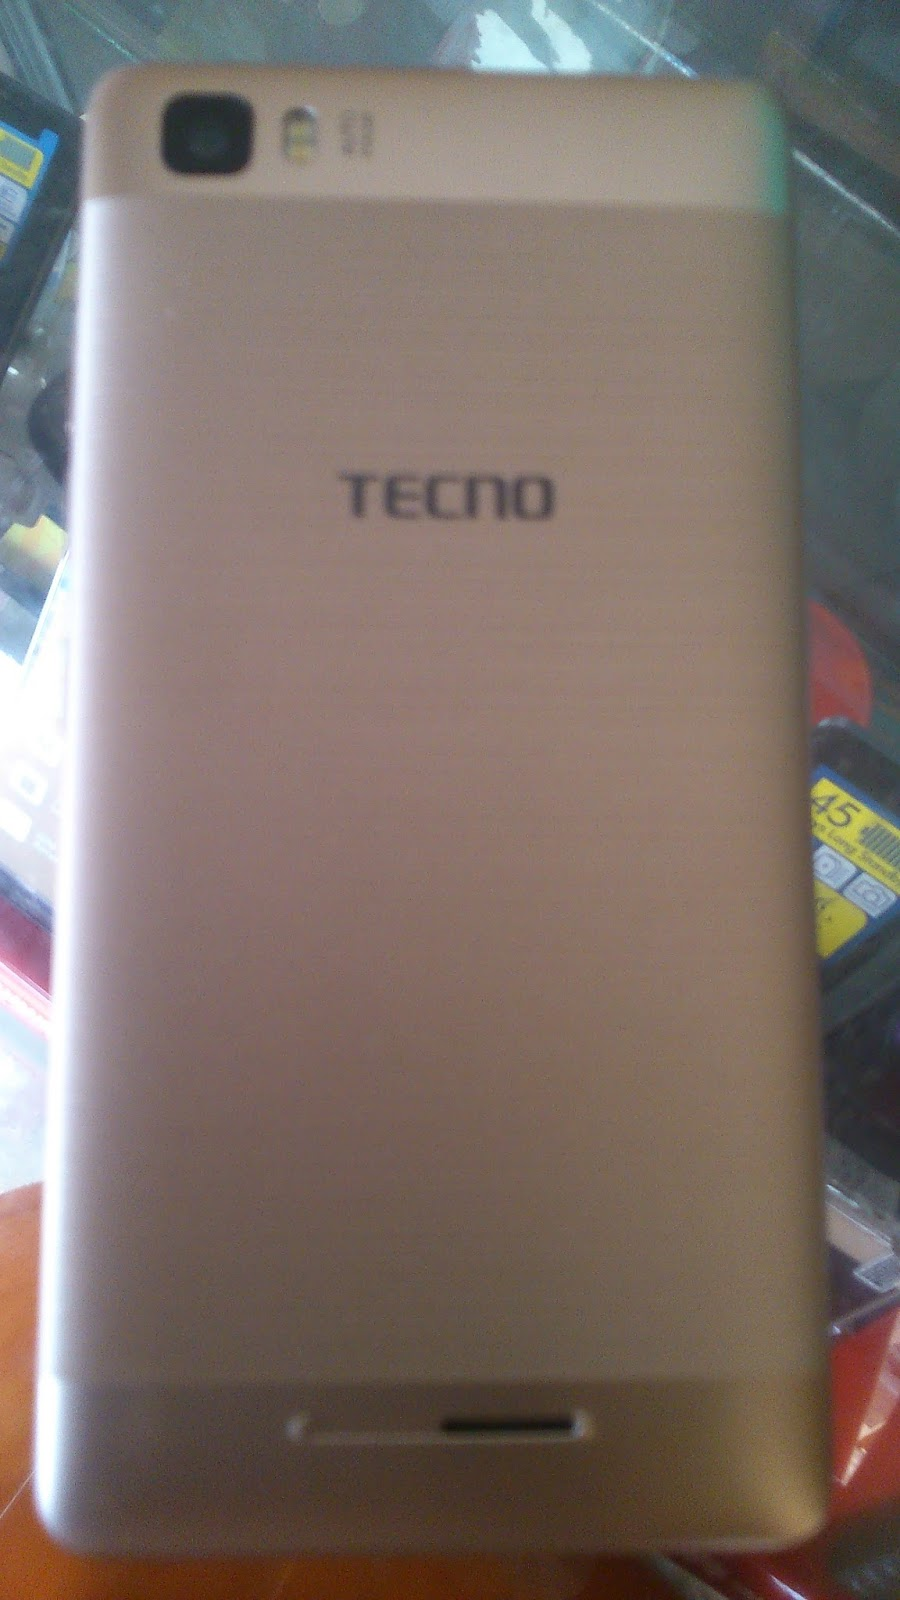 TECNO N8 SCATTER SOFTWARE UPDATE & UNIVERSAL DATA BASE TESTED WITH